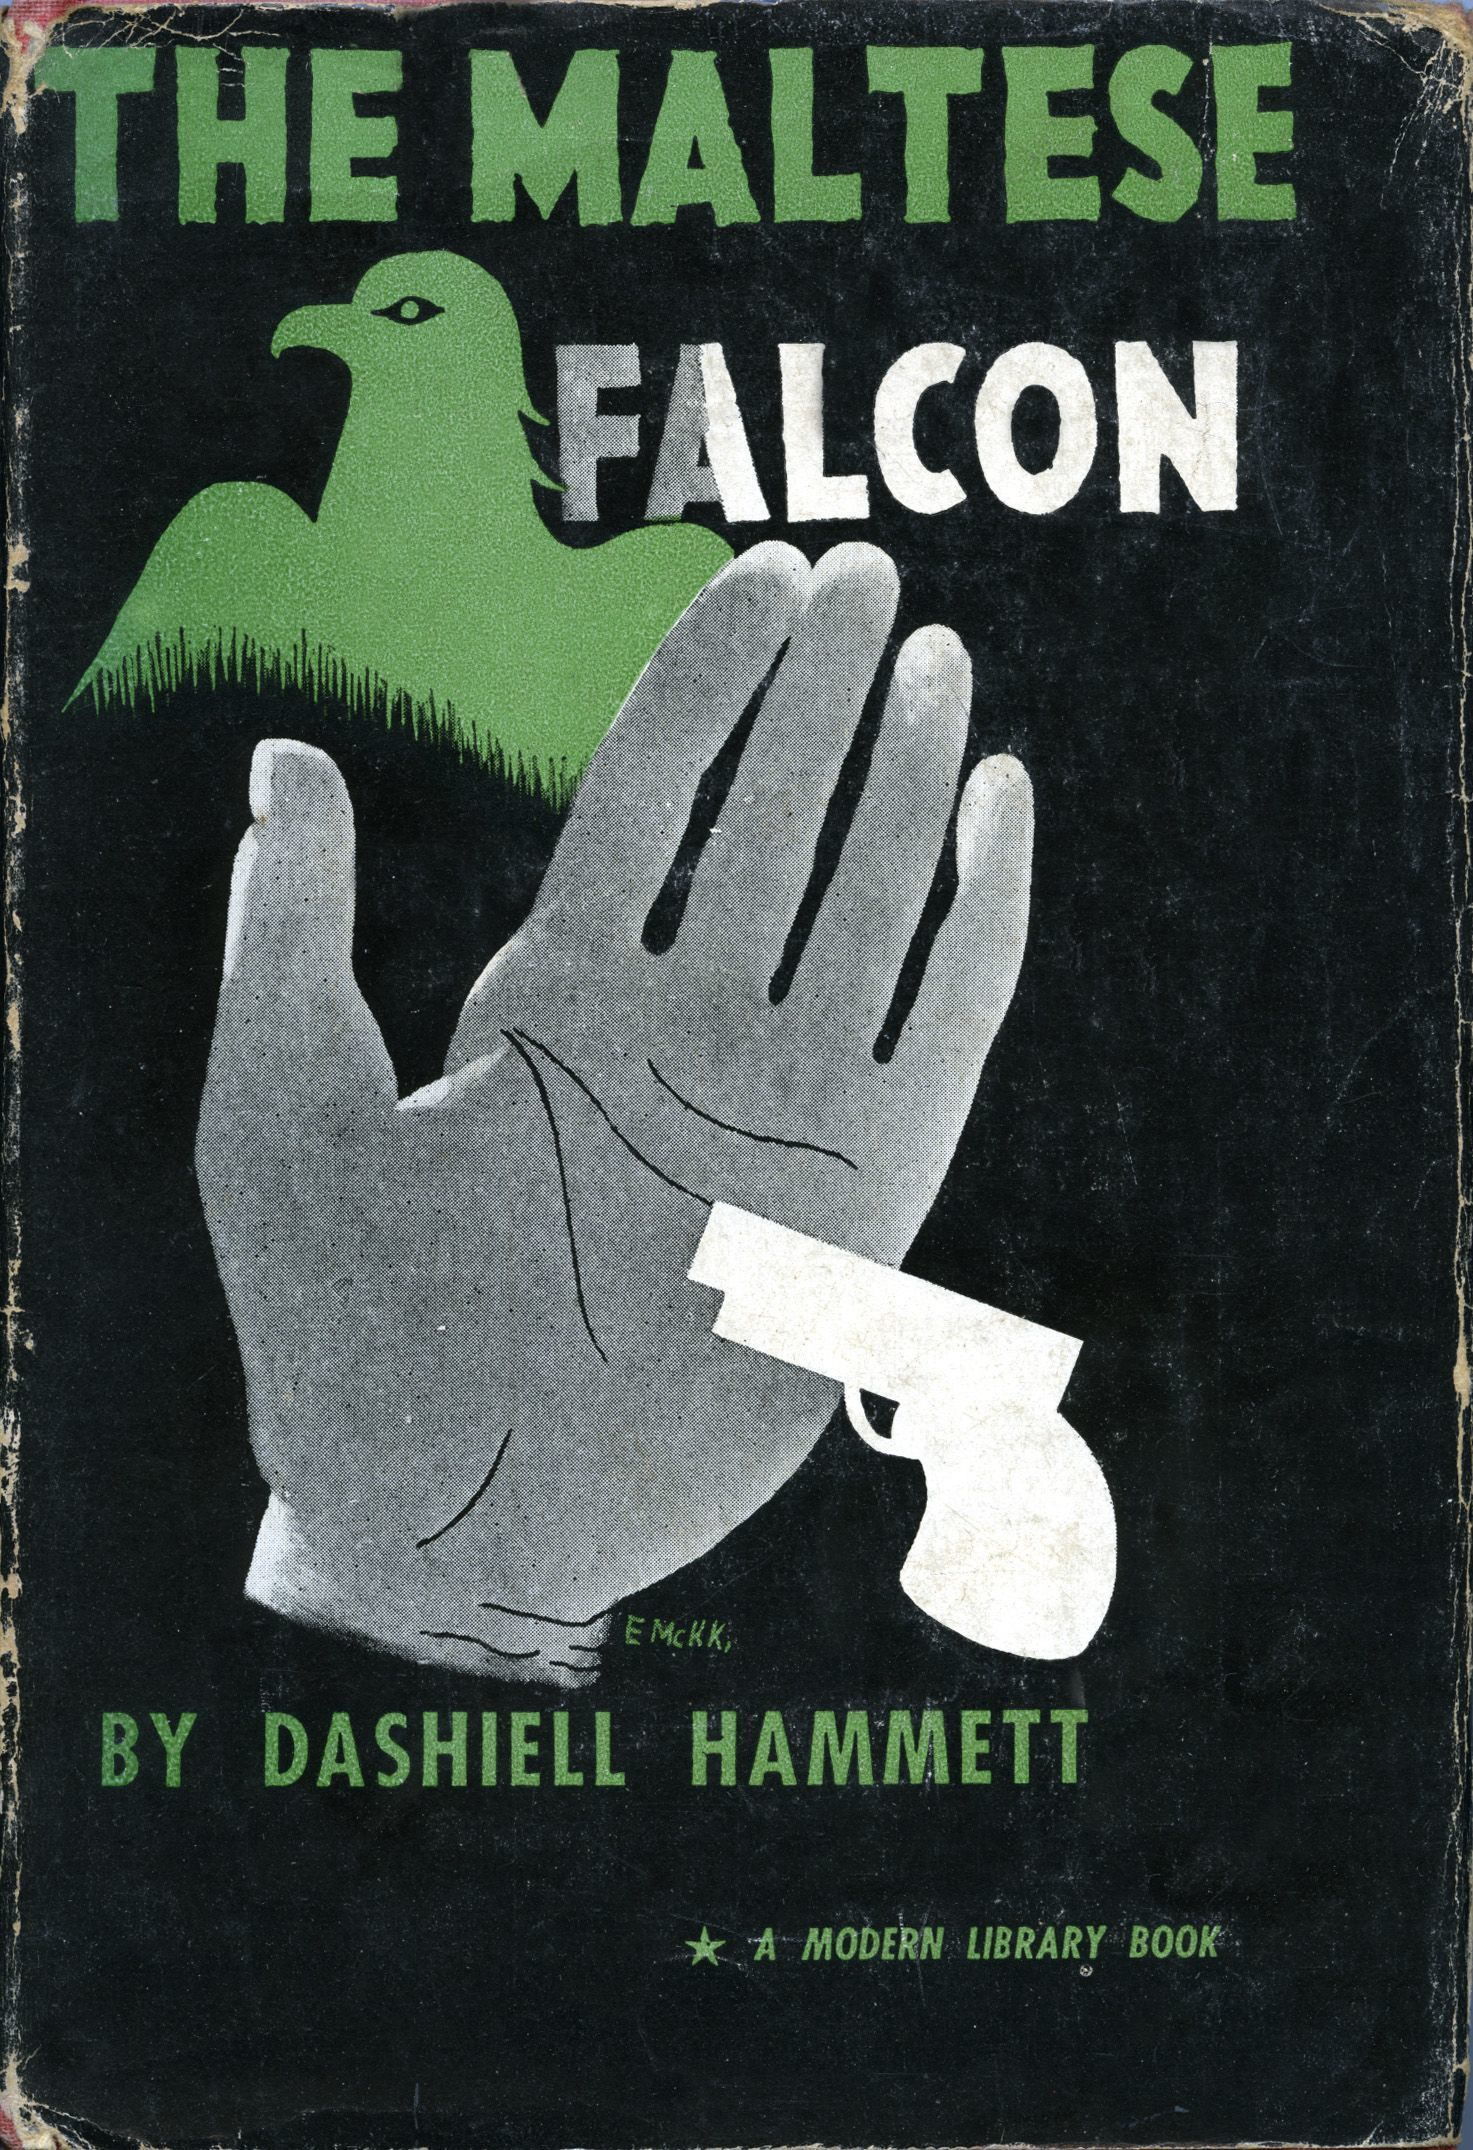 The Maltese Falcon by Dashiell Hammett, Modern Library 1934.